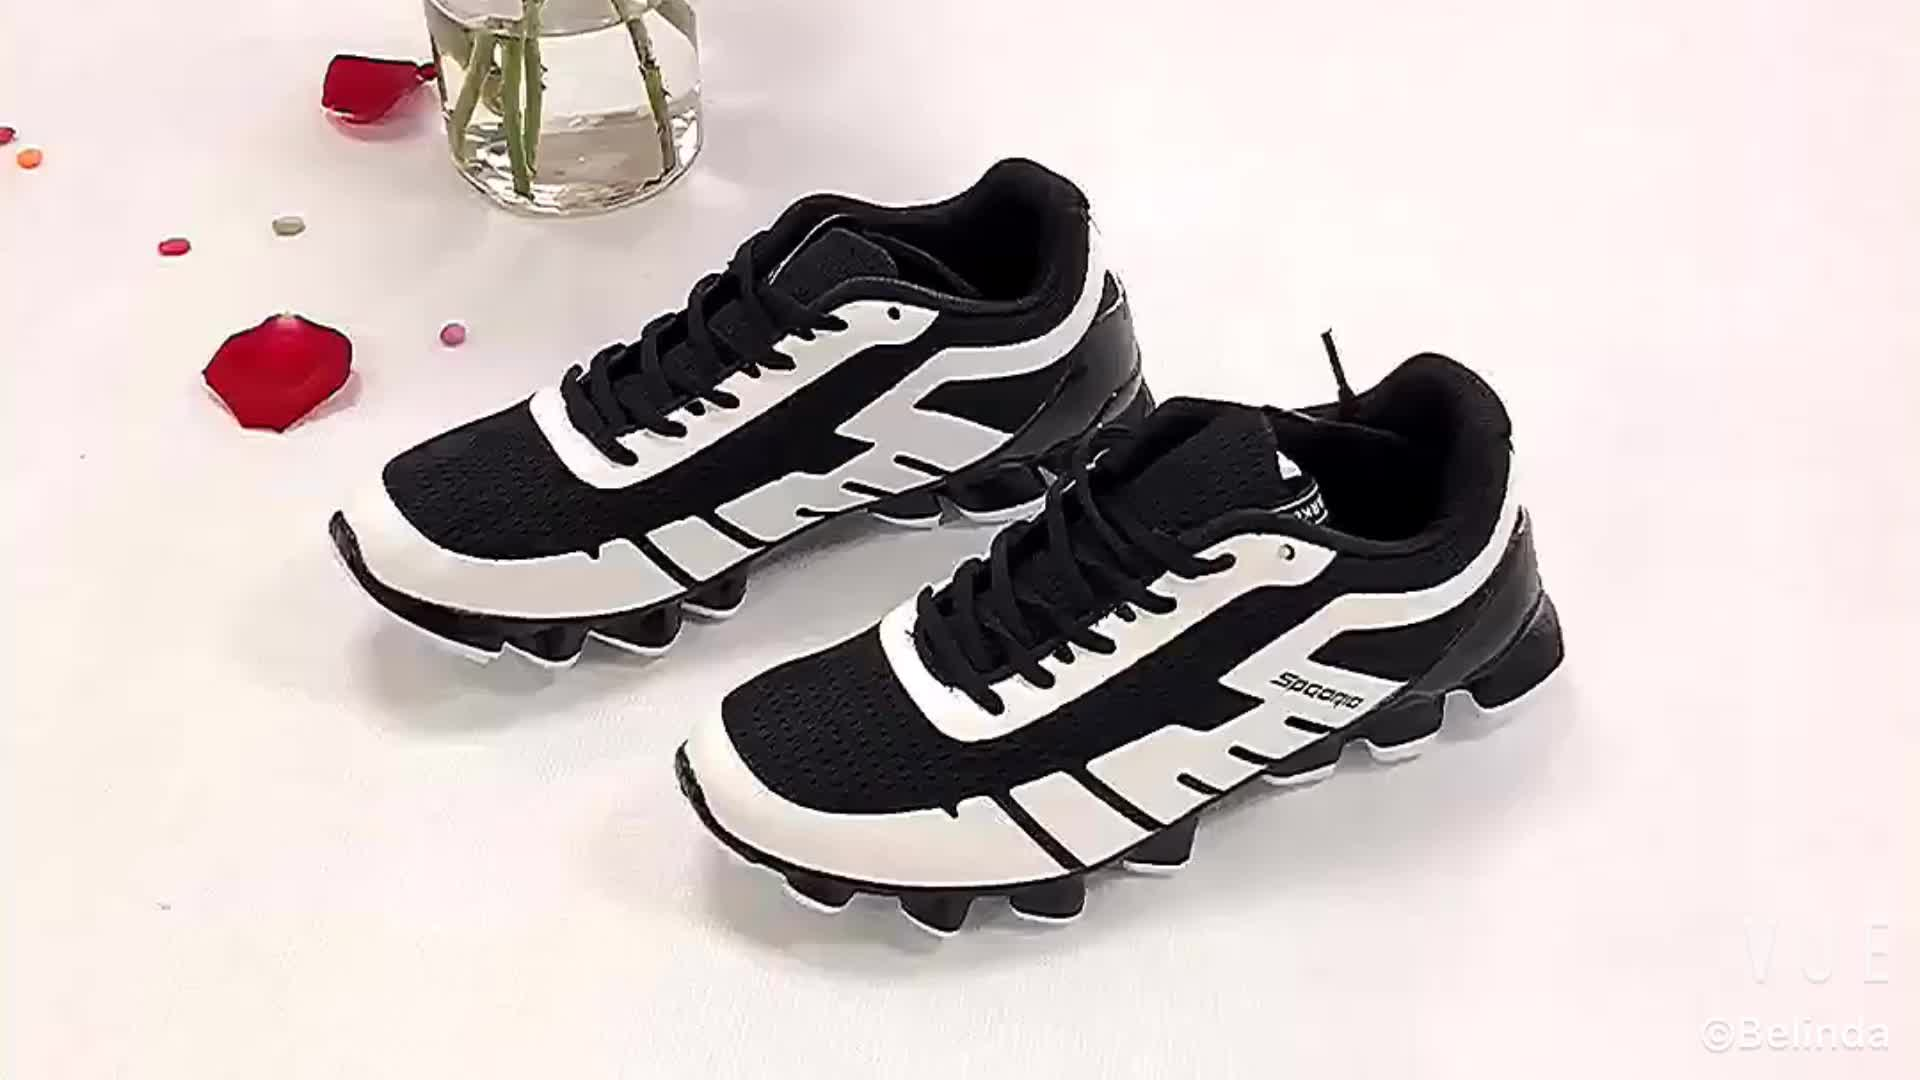 shoes customize design New man sneaker sport jogging breathable RT48Sxw